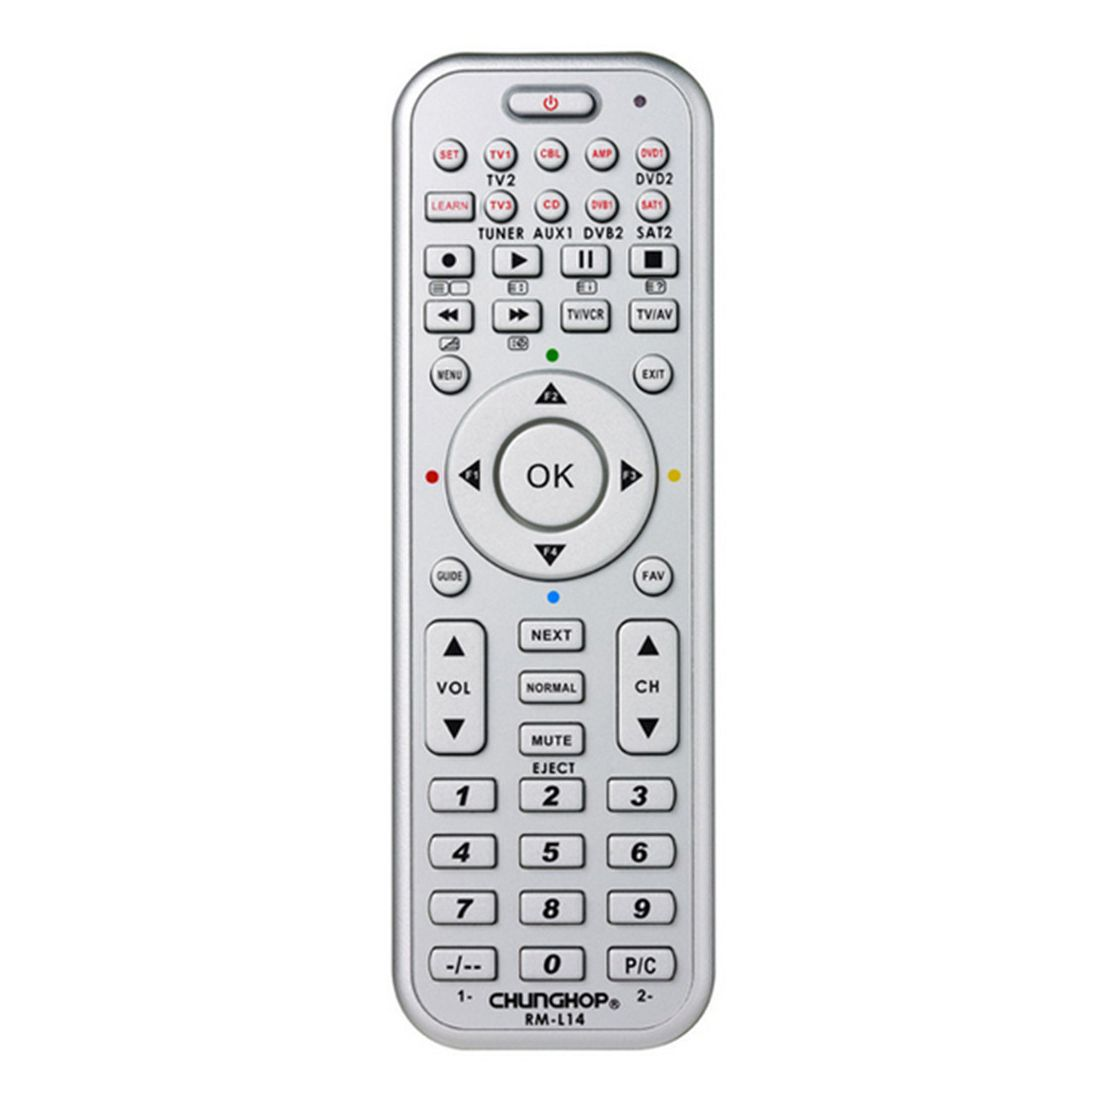 SCLS CHUNGHOP RM-L14 Universal Smart Remote Control With Learn Function For TV CBL DVD SAT DVB CONTROLLER copy